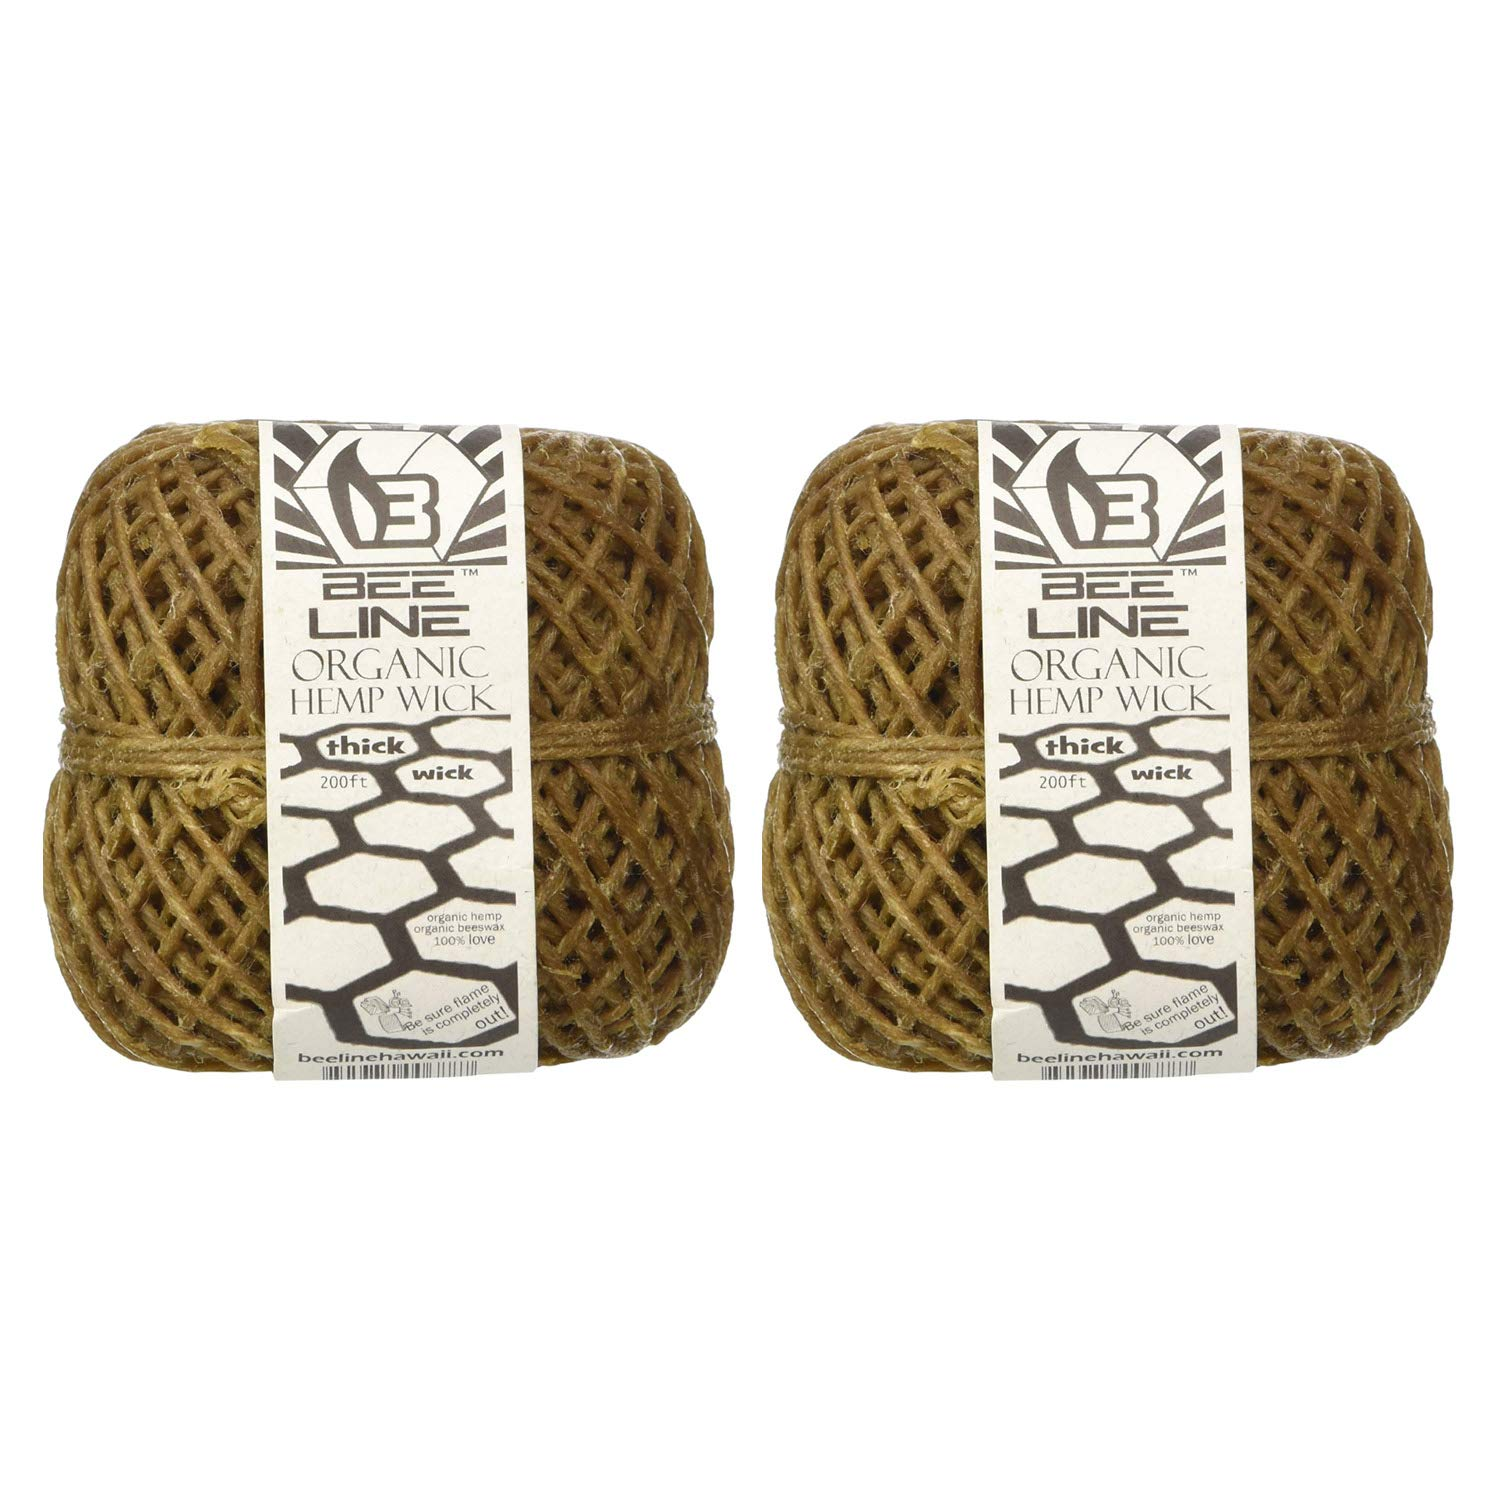 Bee Line 100% Organic Hemp Wick 200 FT Spool Thick Gauge 2 Pack by Bee Line